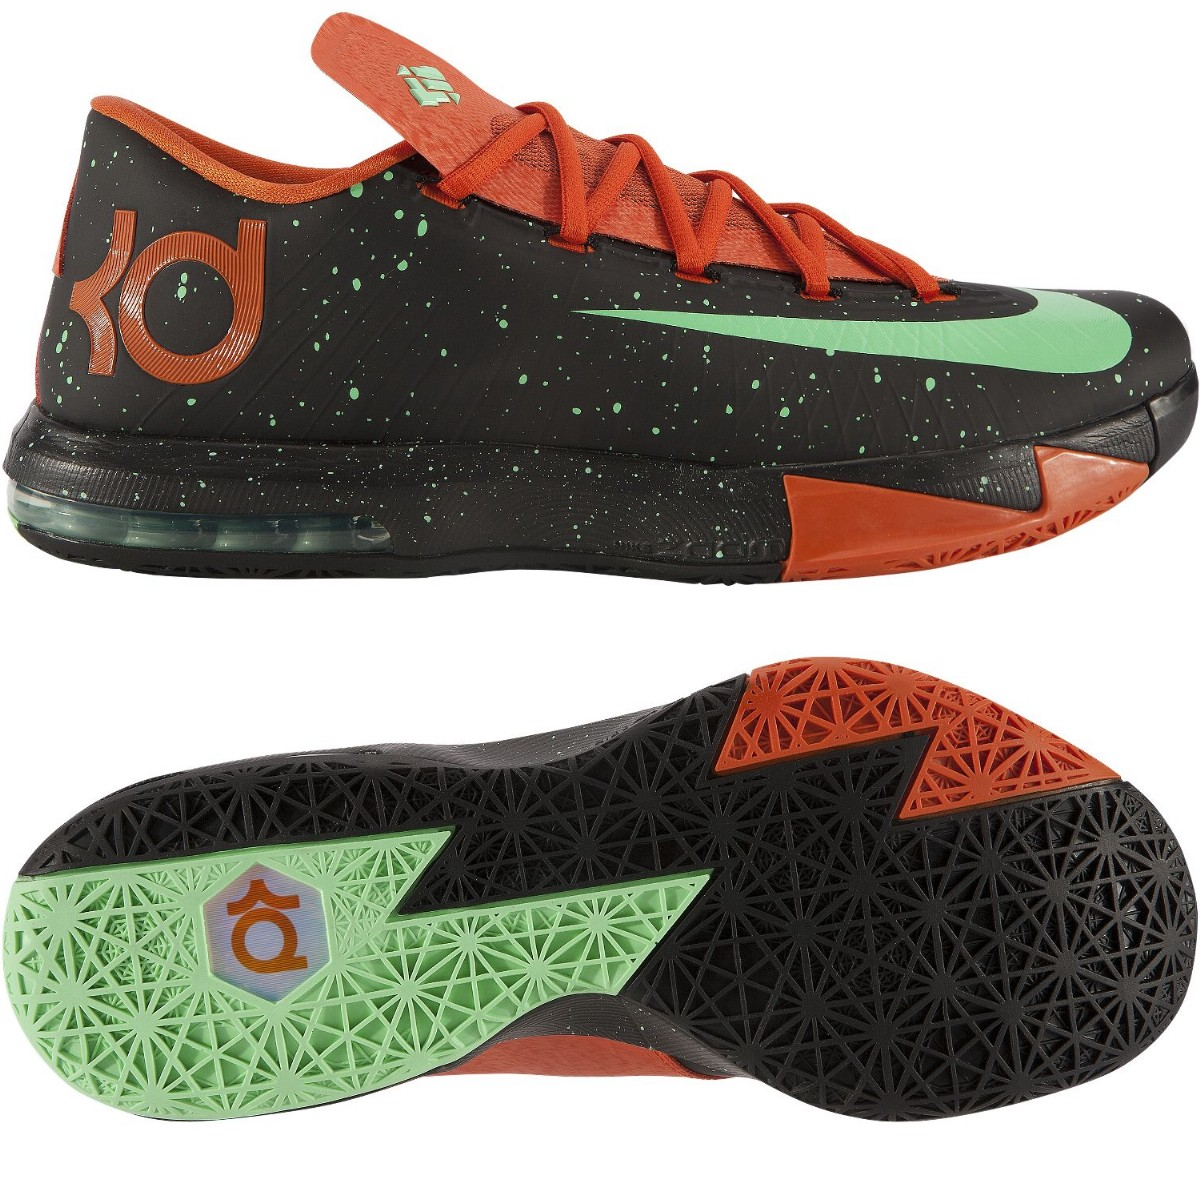 nike kd vi schuhe basketballschuhe hallenschuhe indoor herren gr 47 ebay. Black Bedroom Furniture Sets. Home Design Ideas